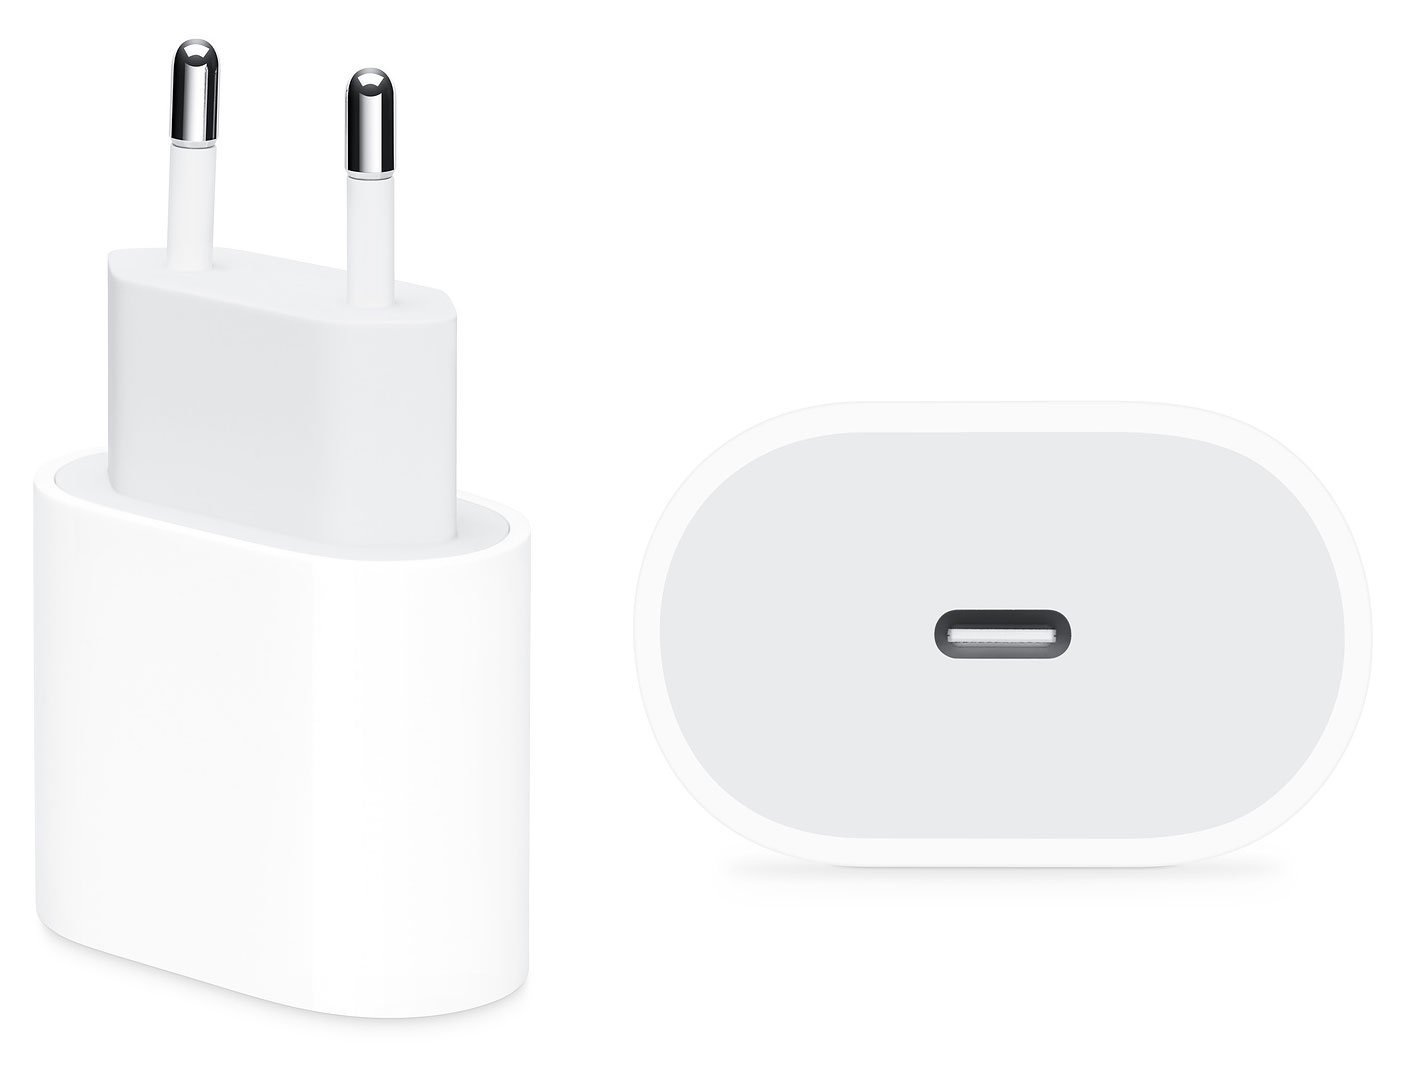 Cargador USB-C de 20W de Apple